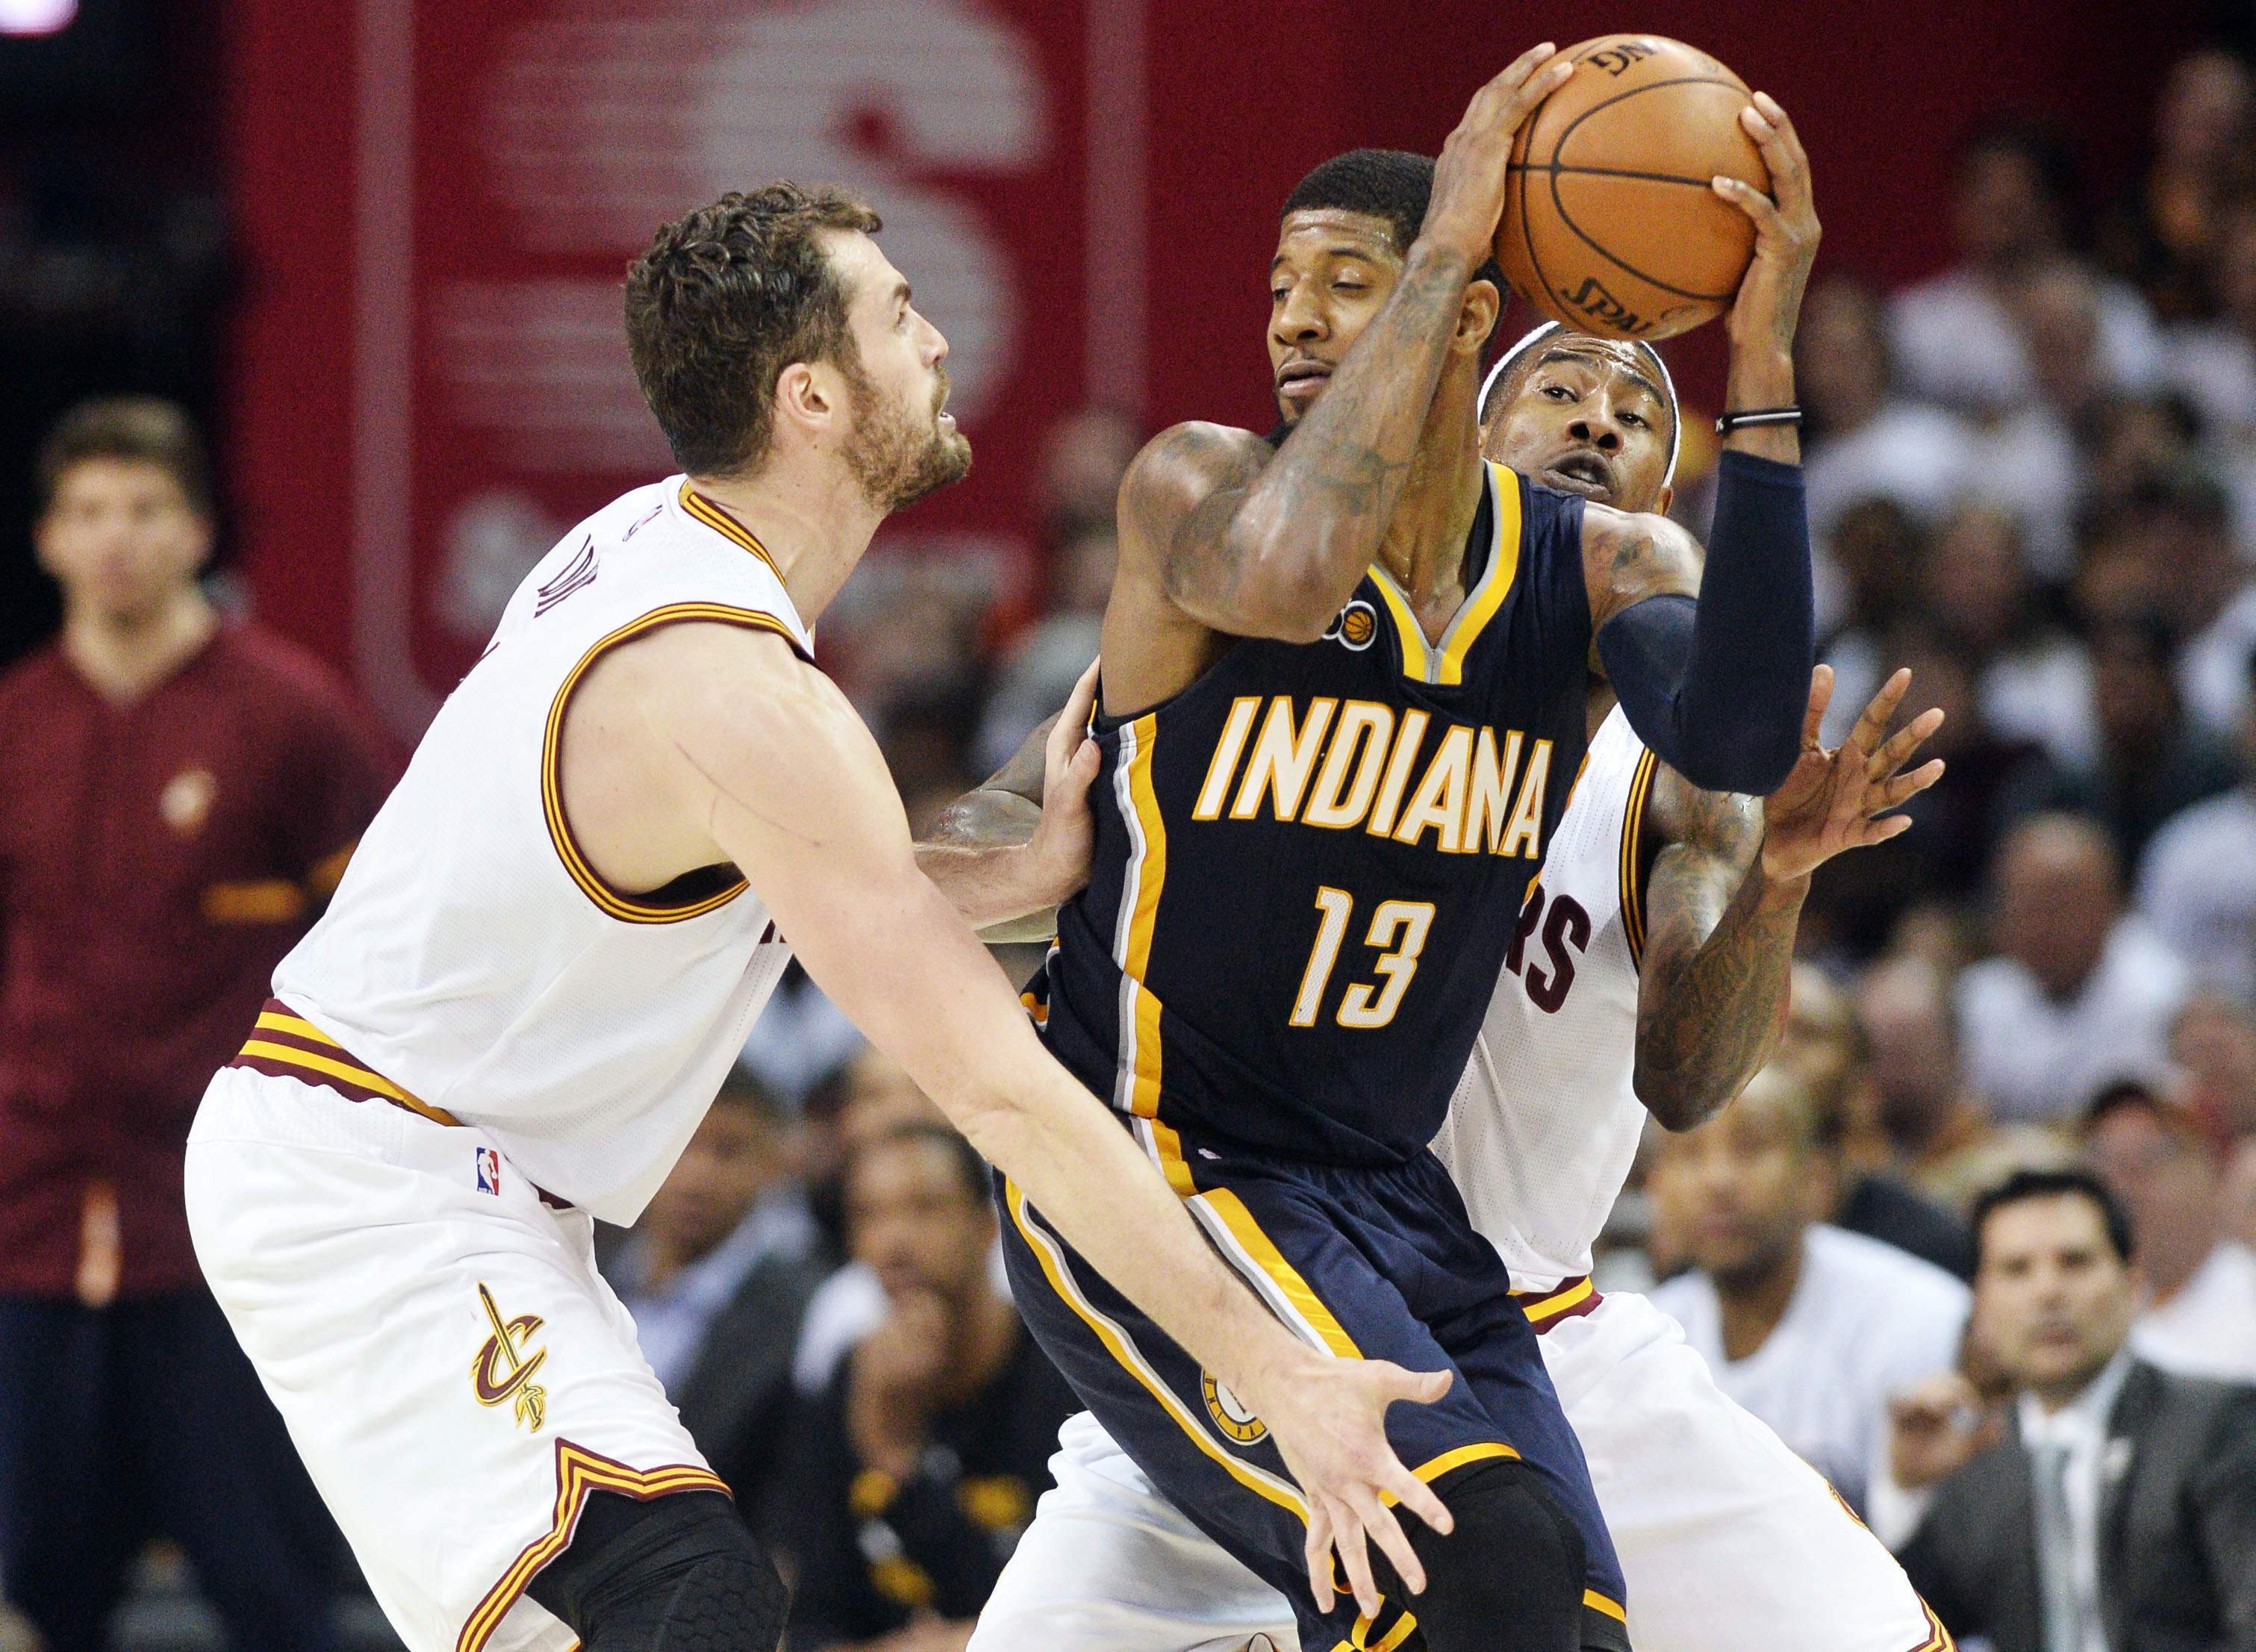 10017717-nba-playoffs-indiana-pacers-at-cleveland-cavaliers